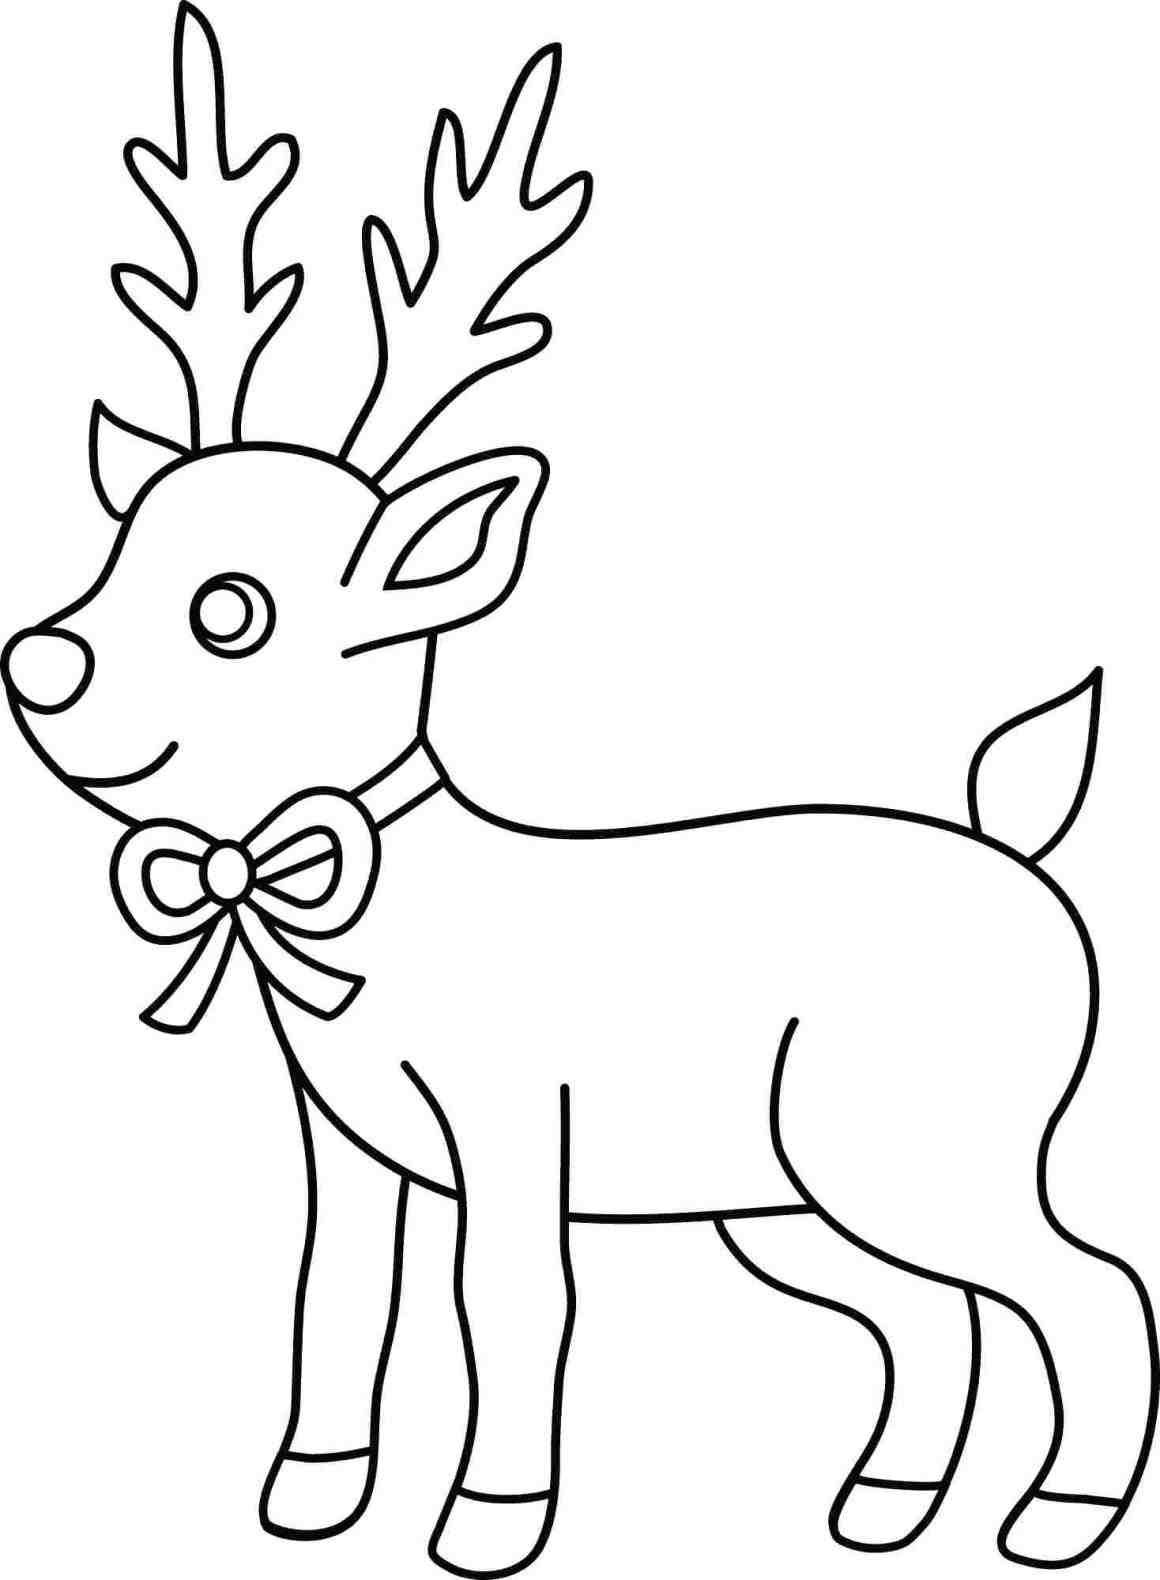 Christmas Reindeer Coloring Sheets With New Pages Gallery Printable Sheet